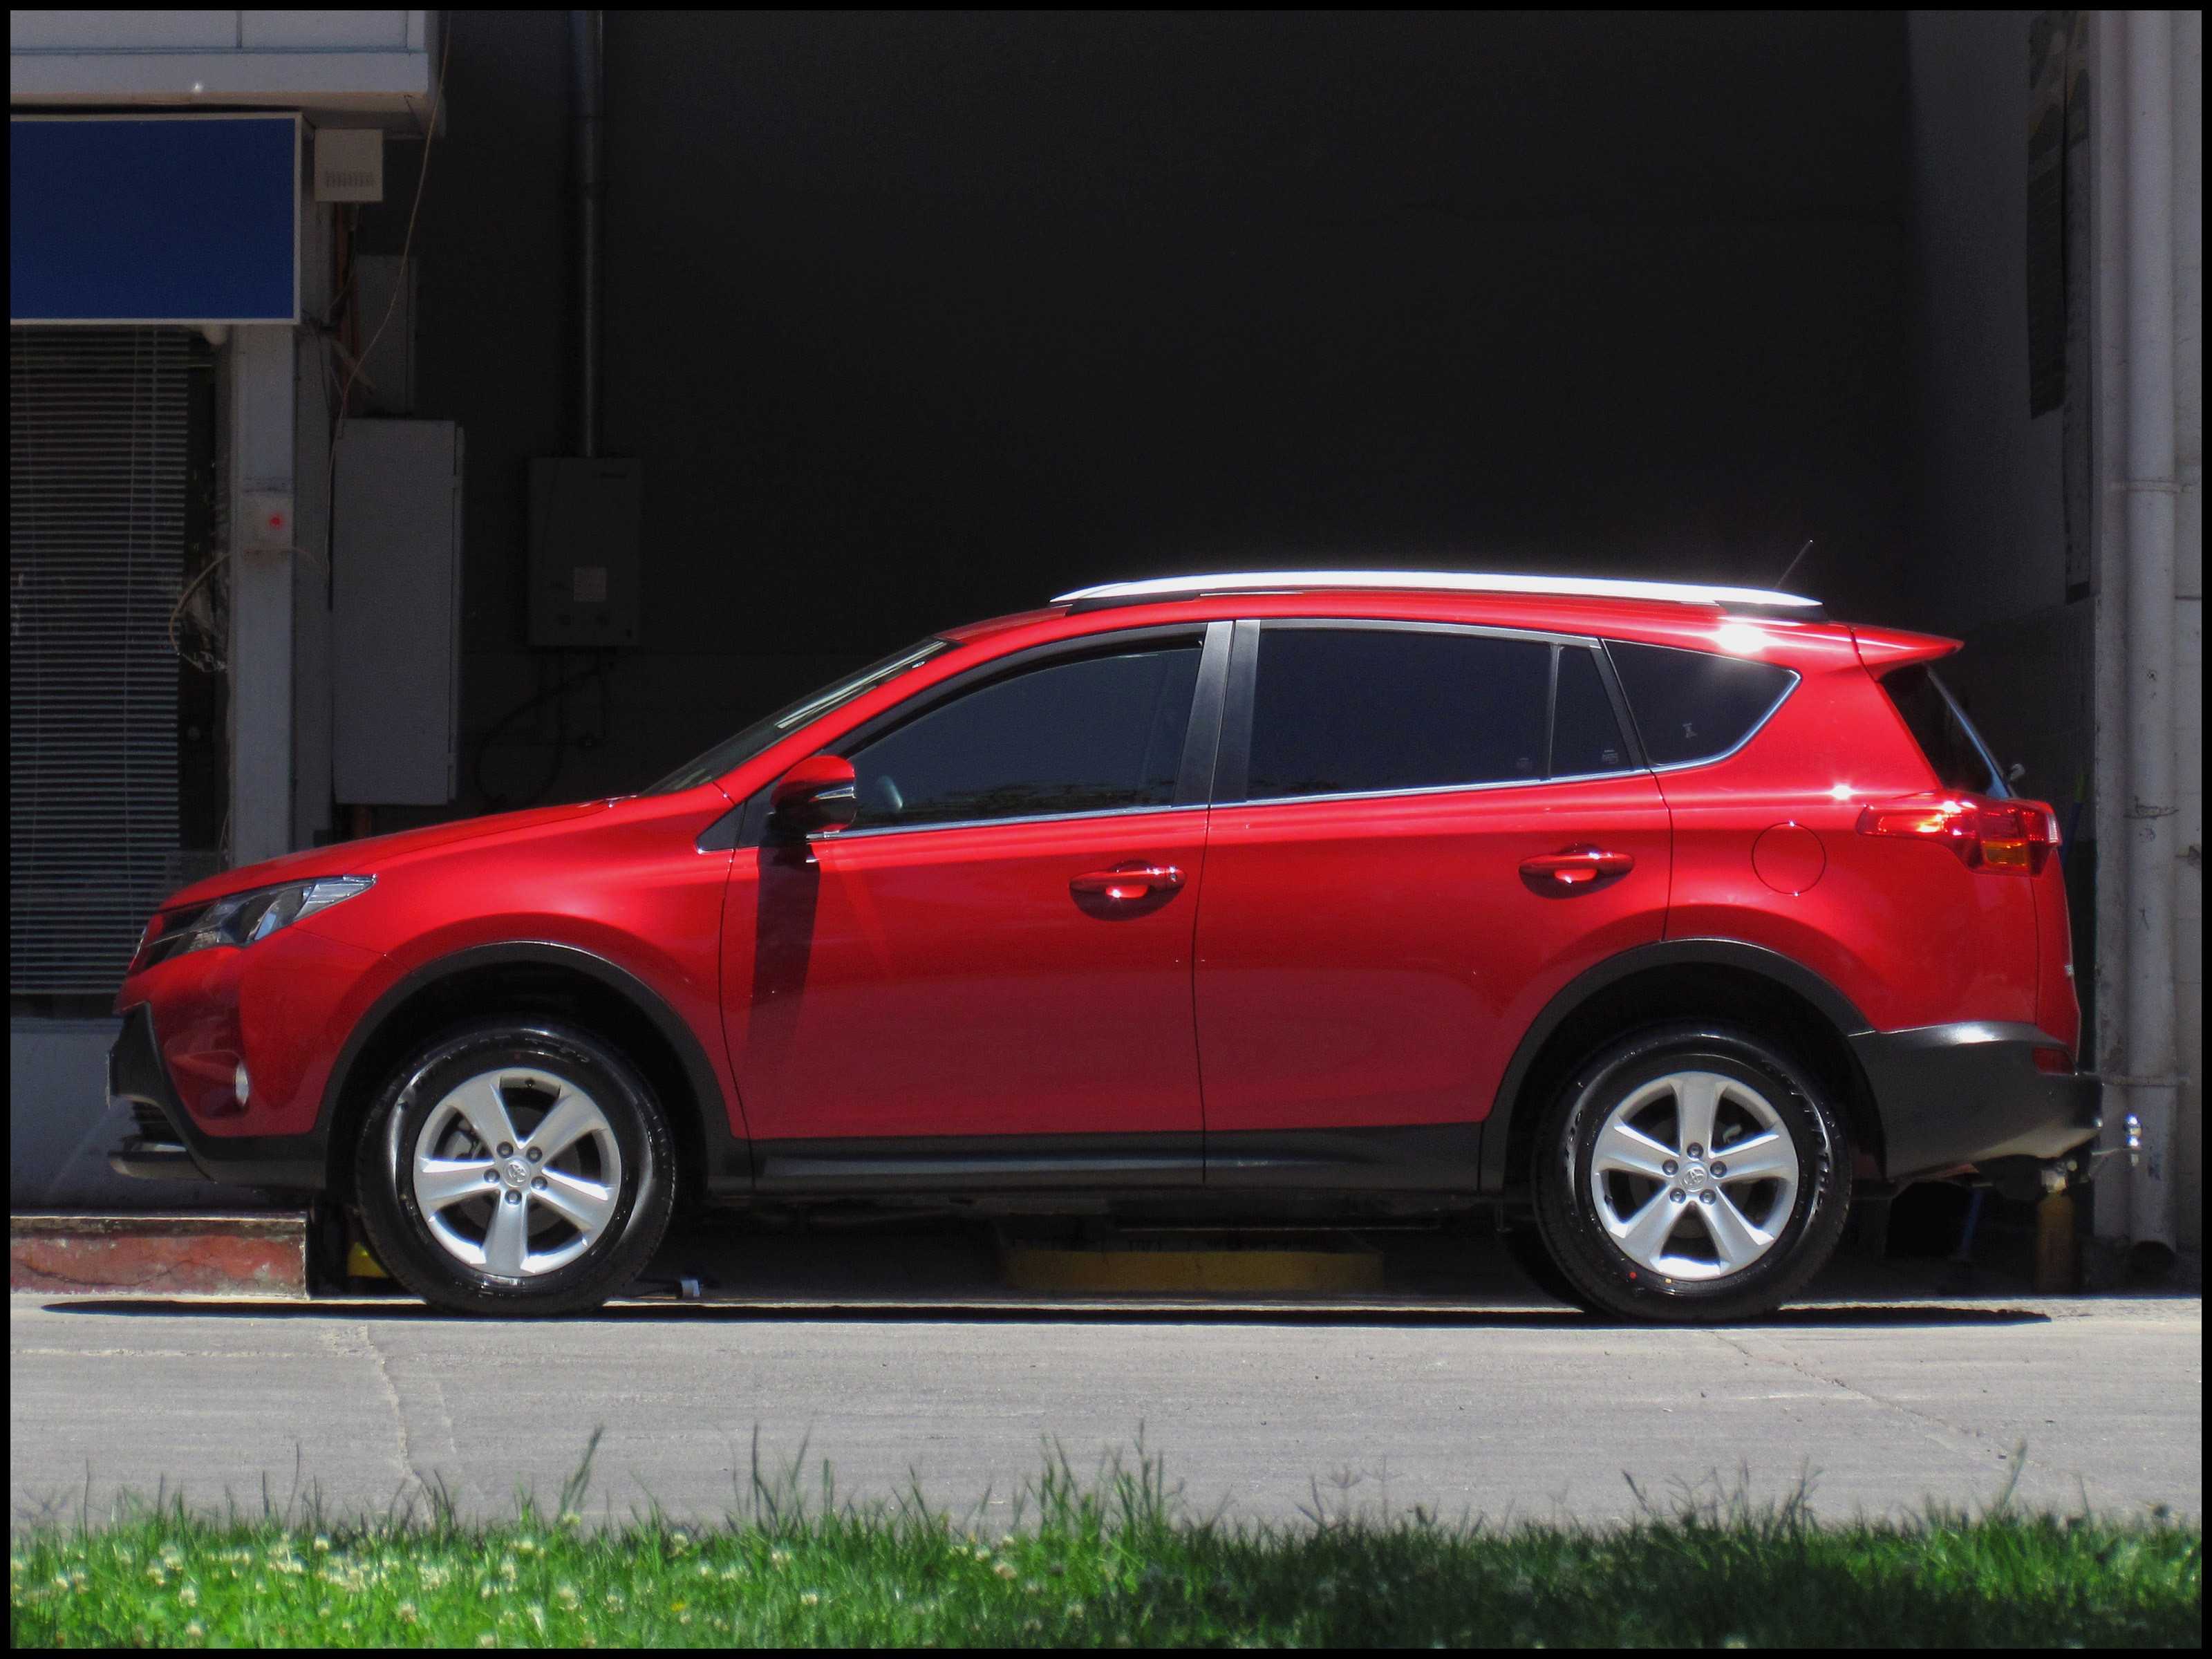 Best Gallery of Take A Look About 2007 Rav4 Mpg with Fascinating